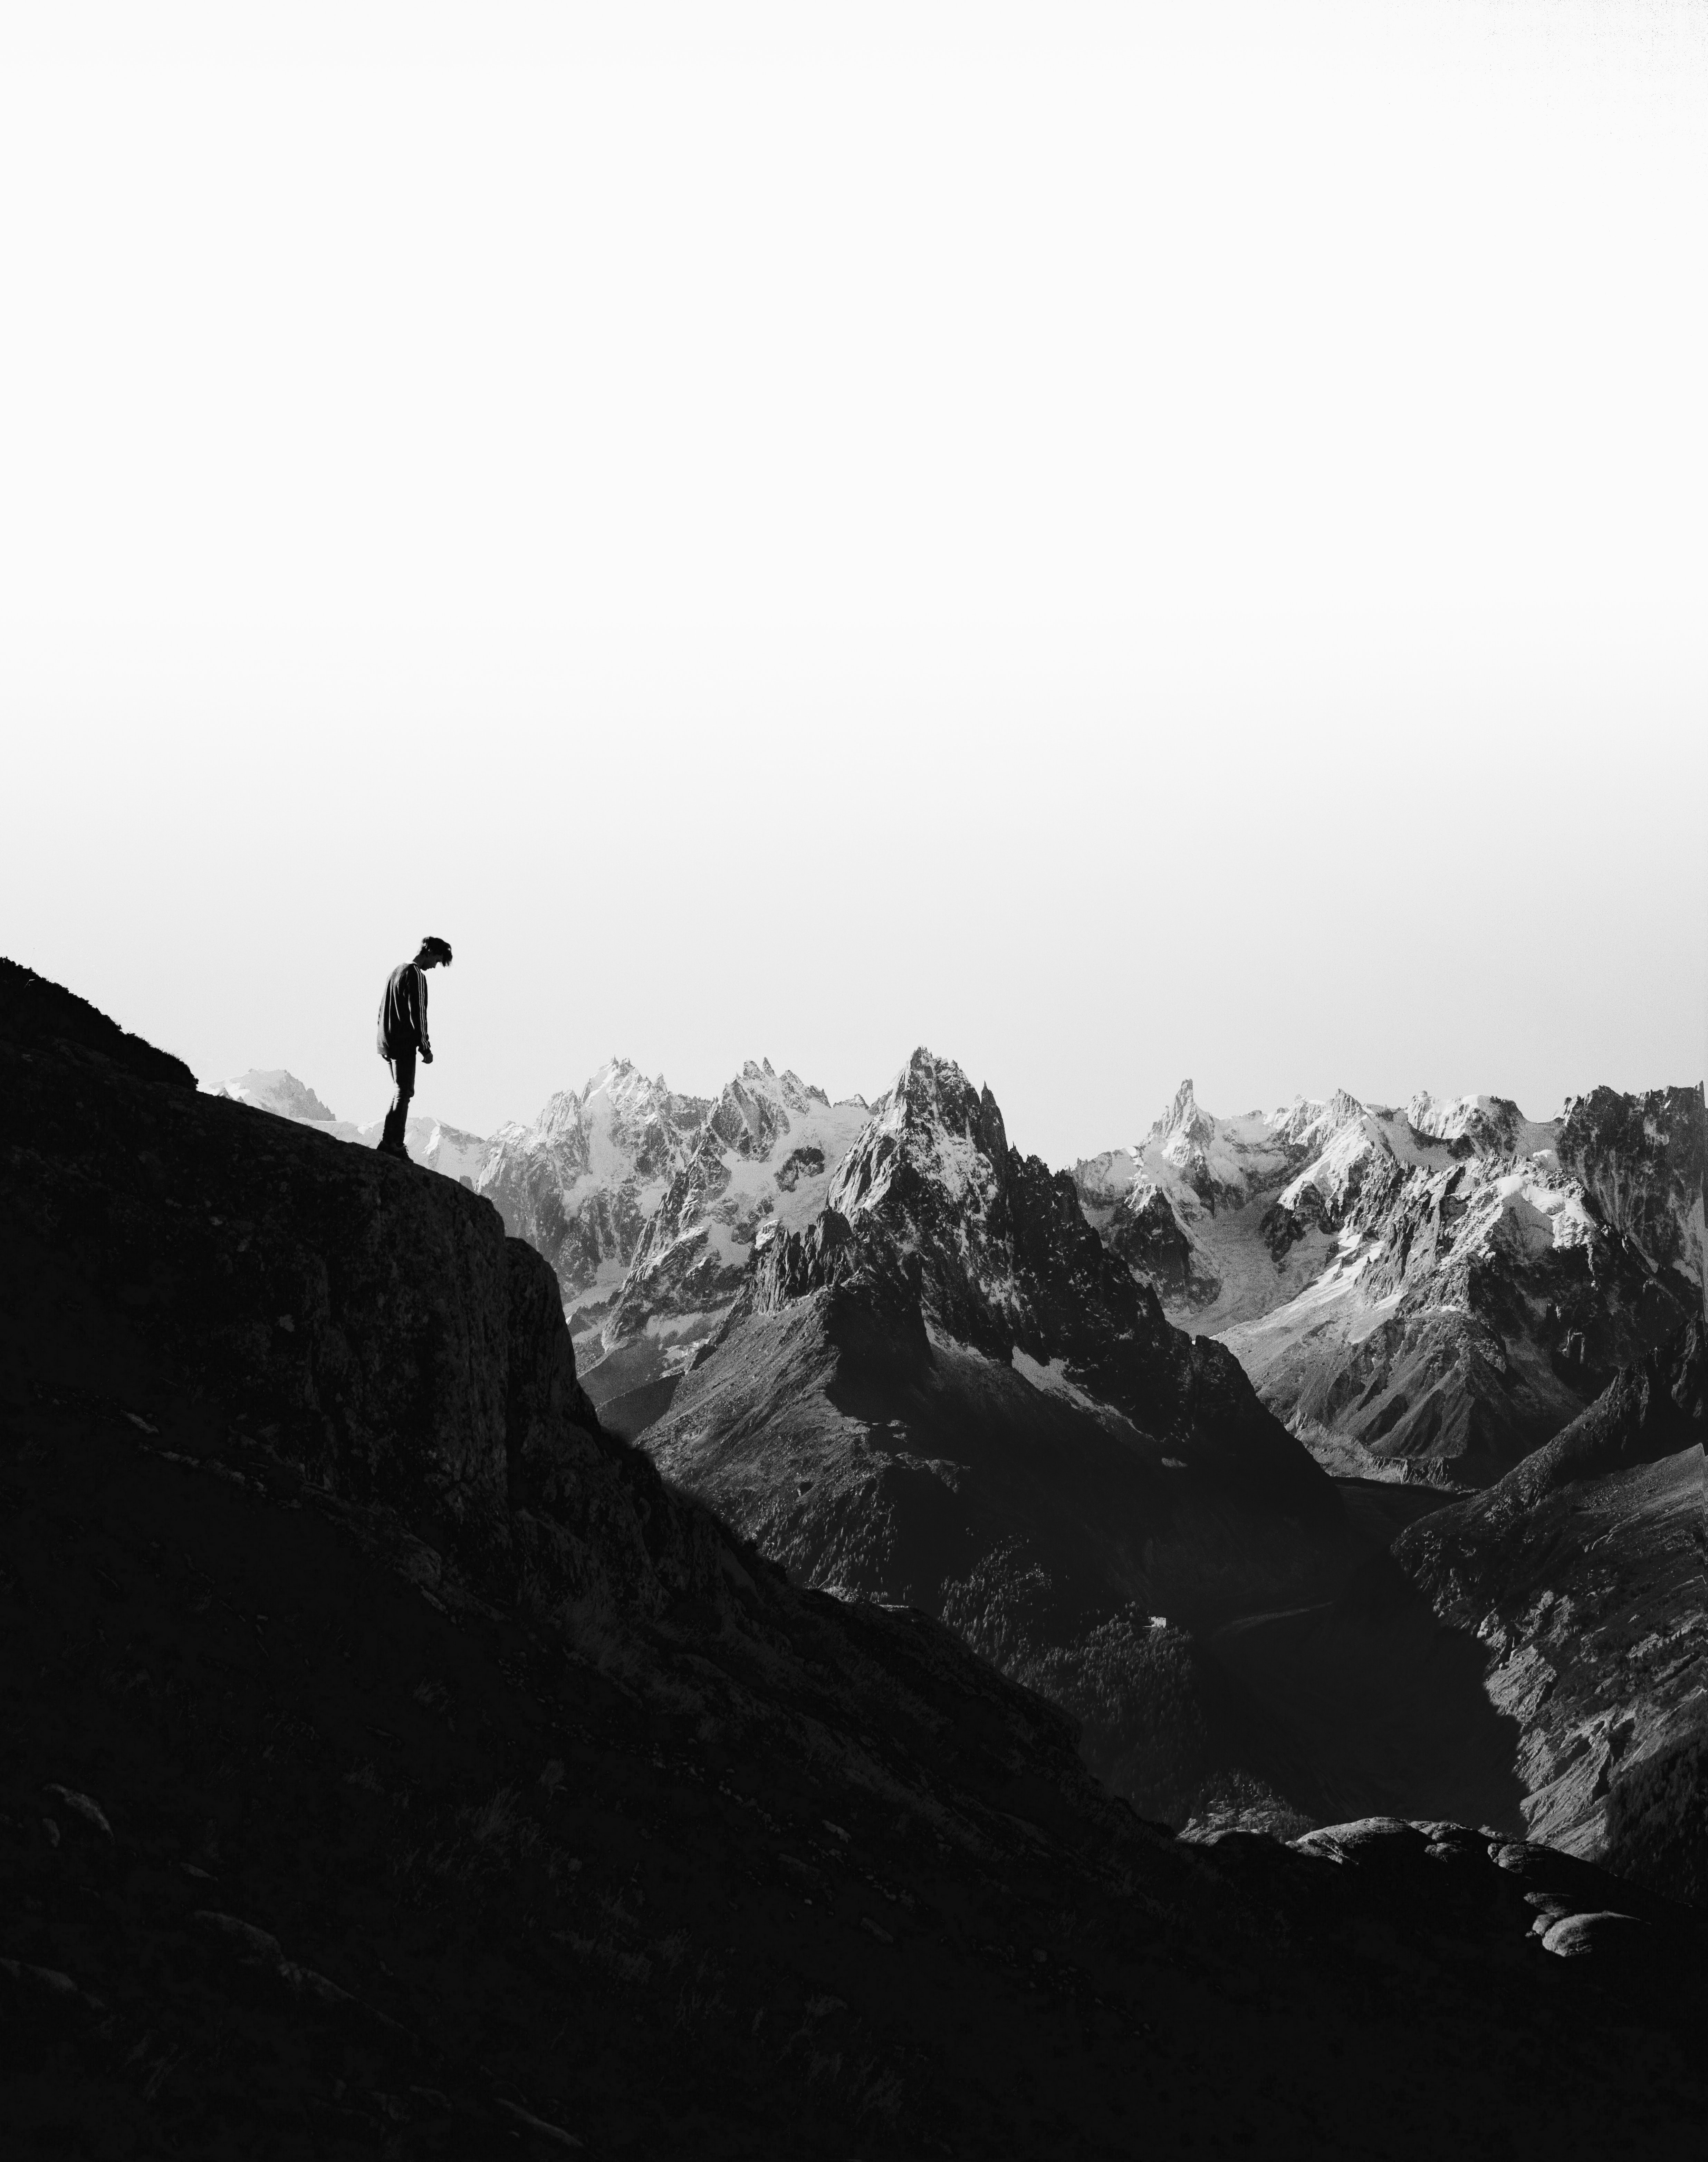 silhouette of person standing on cliff in front of snowed mountains